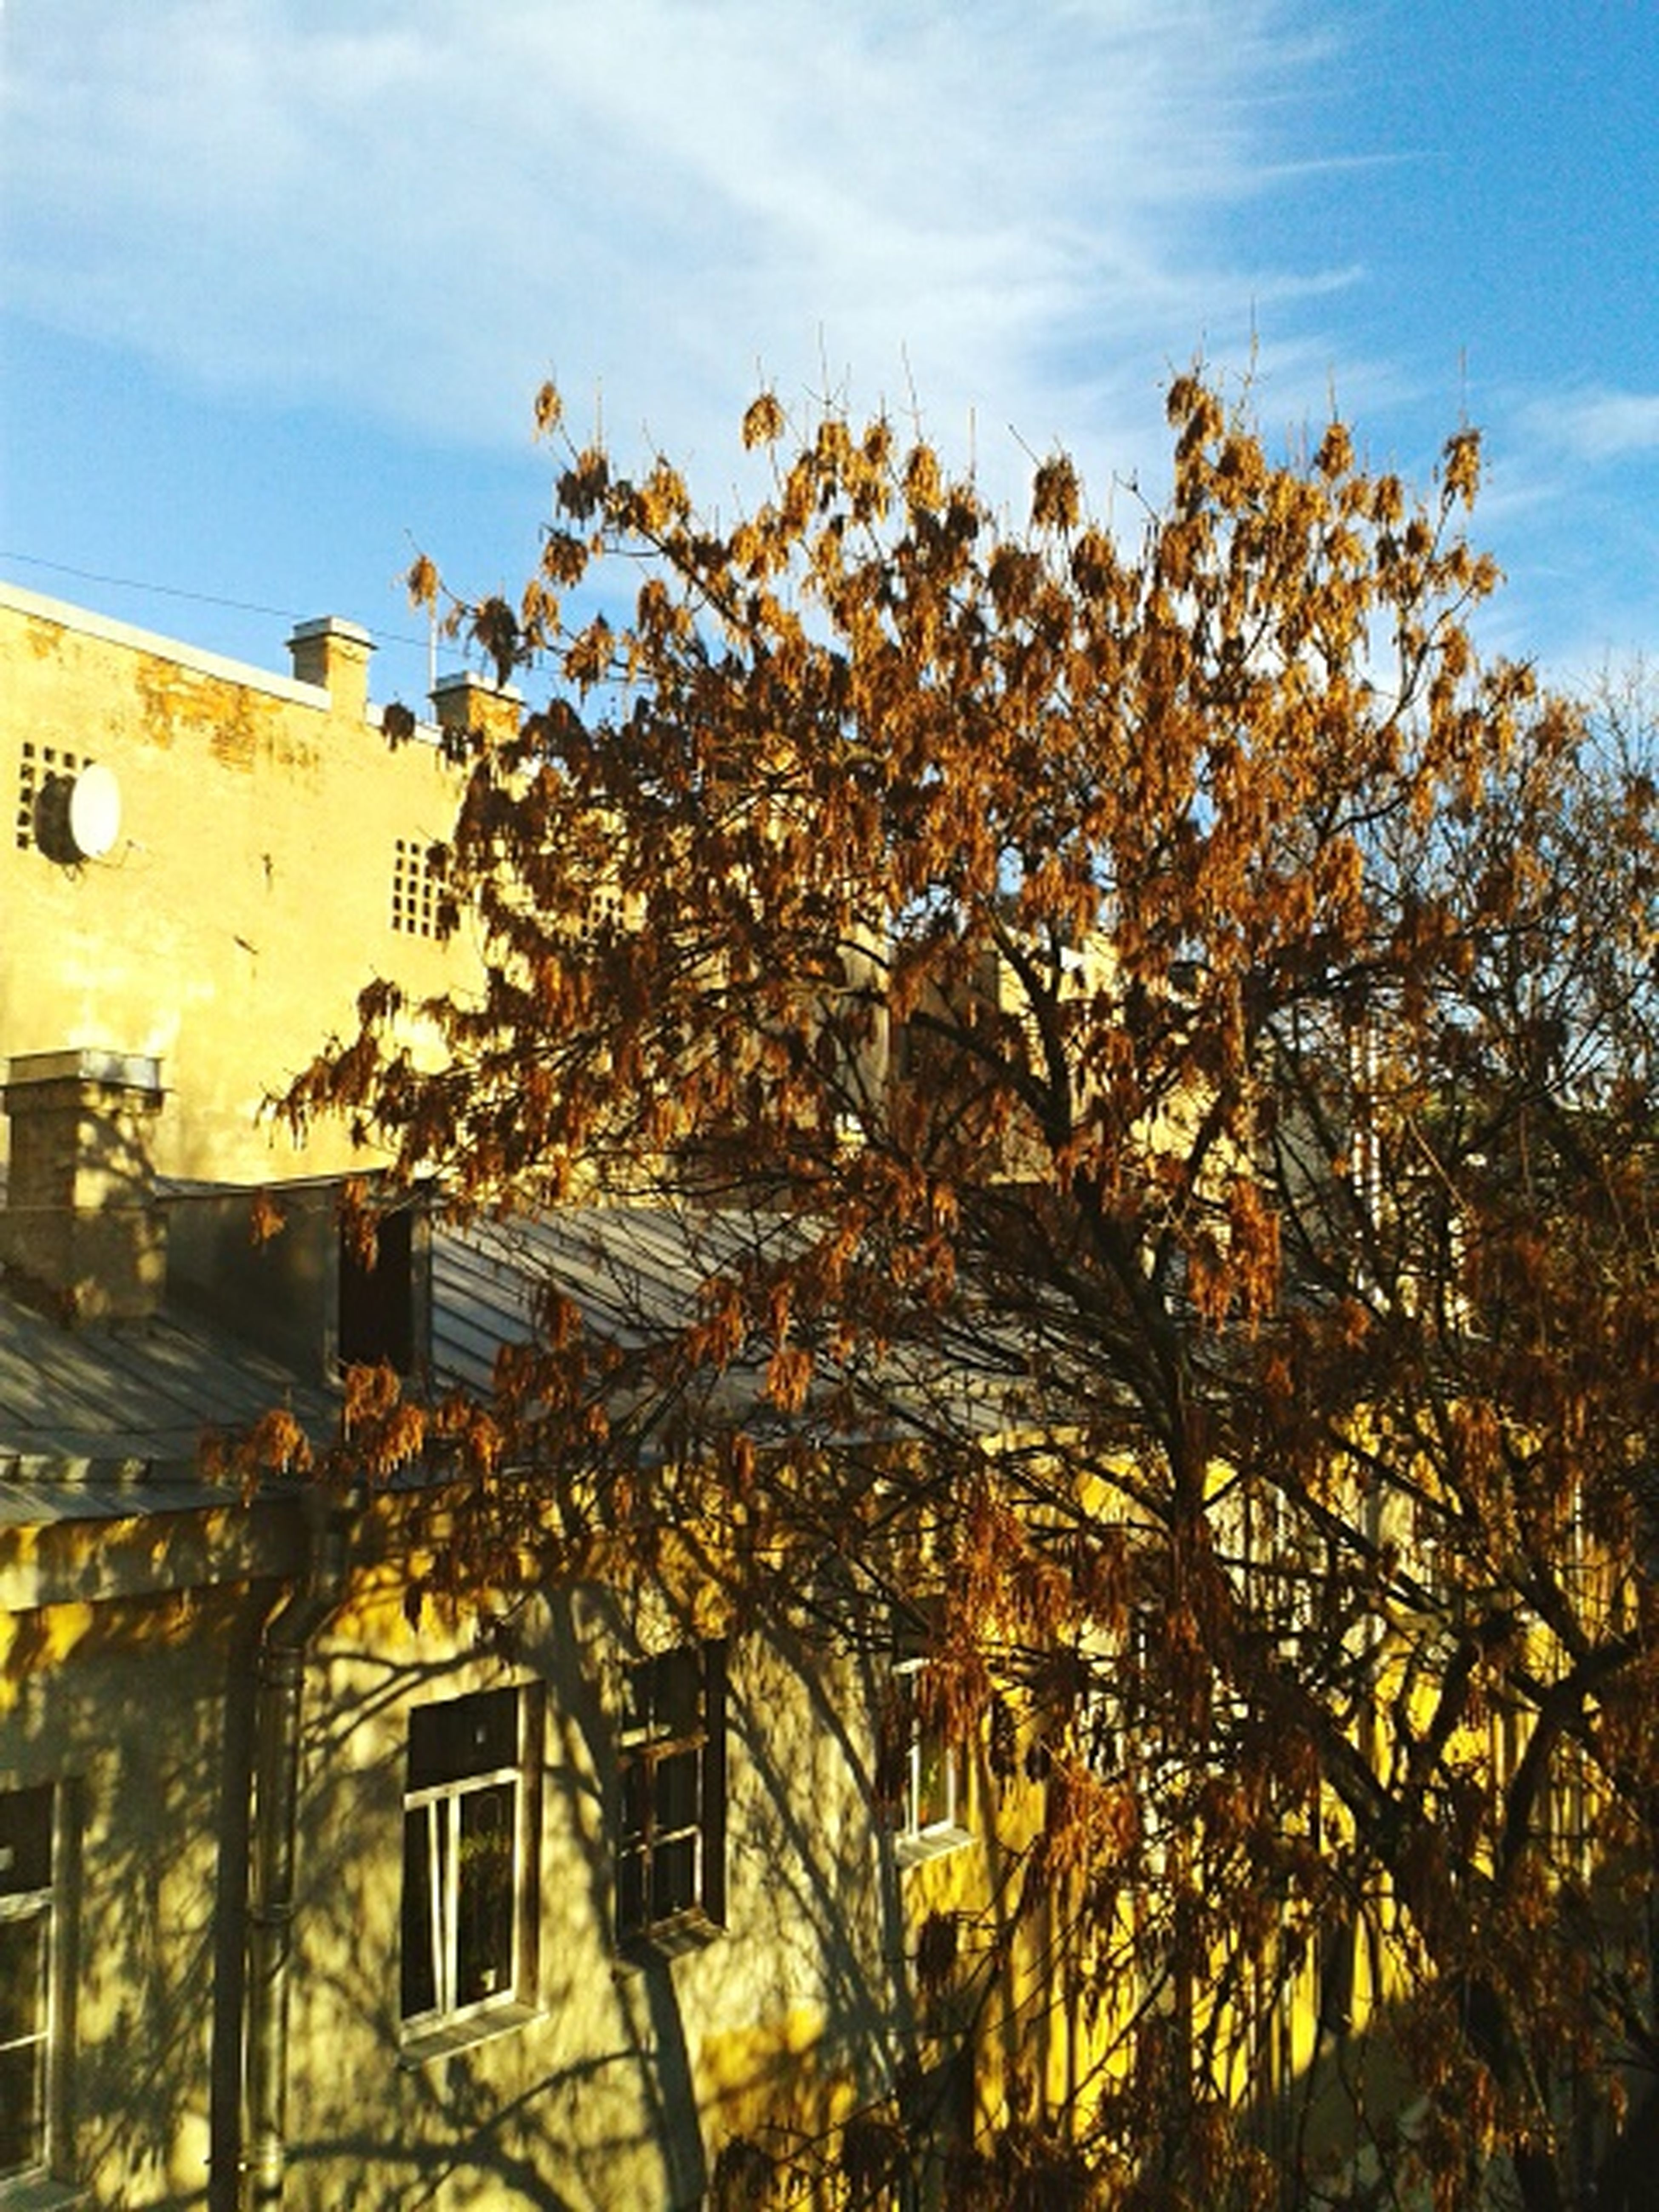 Autumn Autumn Colors Autumn Trees Blue Sky Cristal Clear Sunshine Yellow Leaves Yellow Wall View From Window